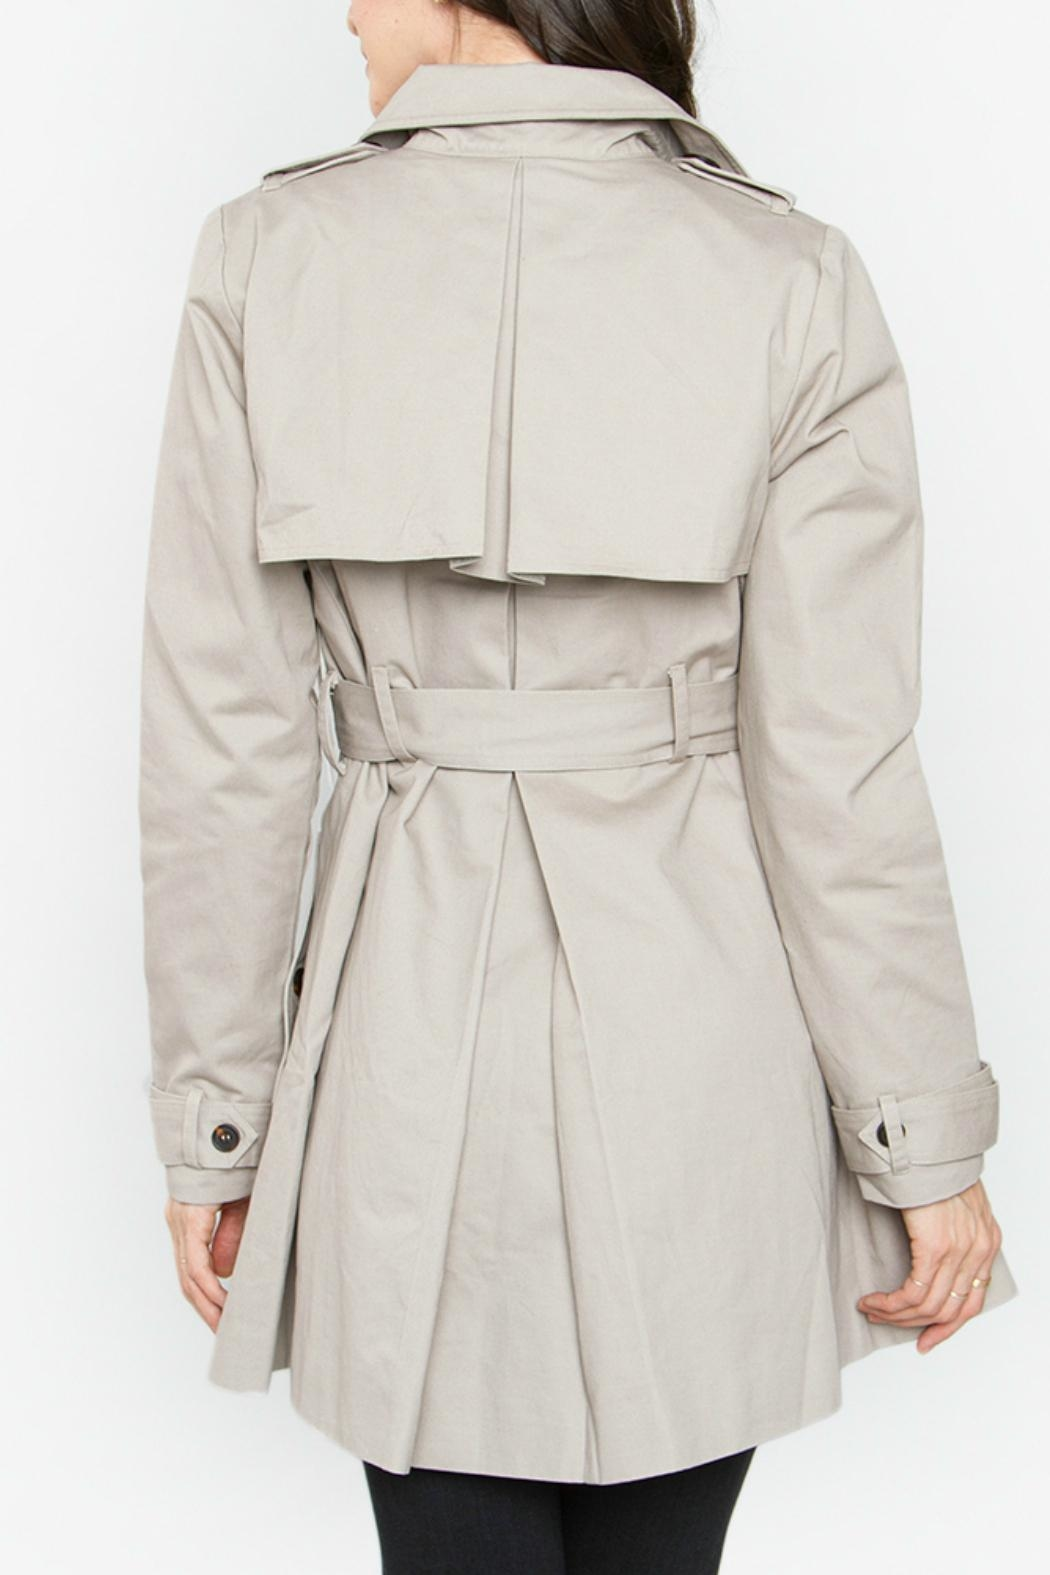 Sugar Lips Beige Trench Coat - Side Cropped Image